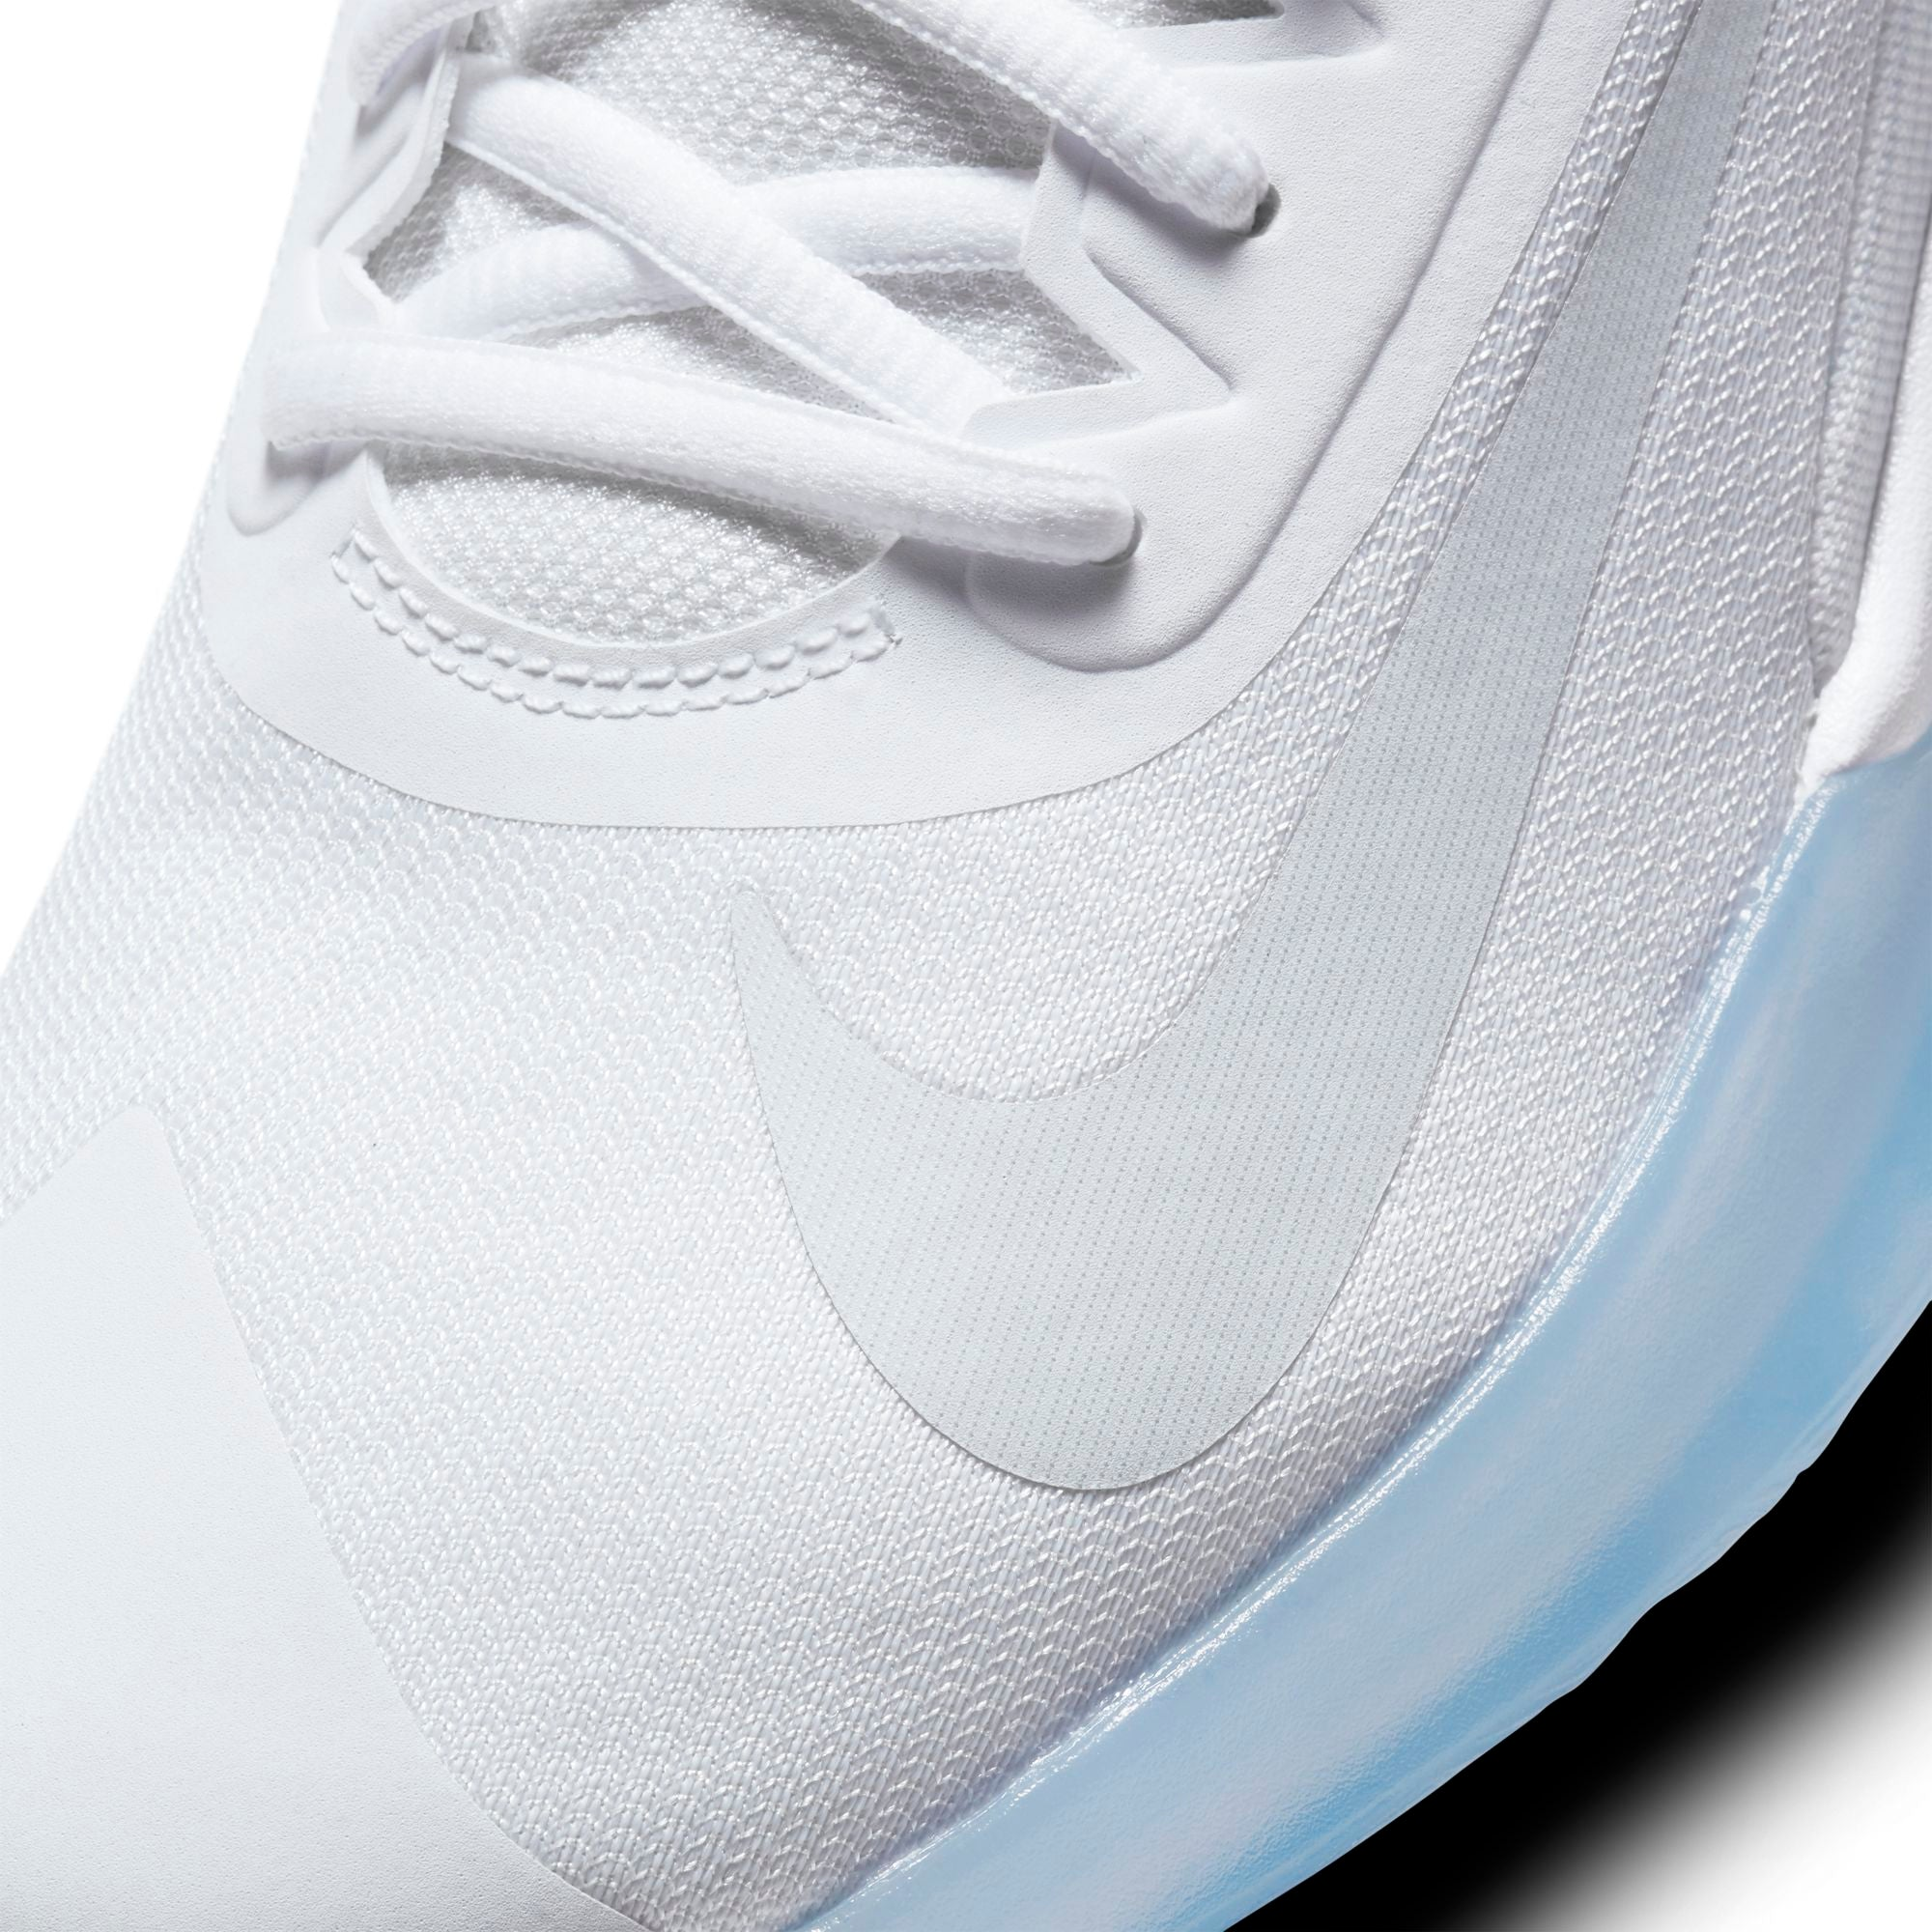 Nike Basketball Precision 4 Shoe - White/Pure Platinum/Clear NK-CK1069-100